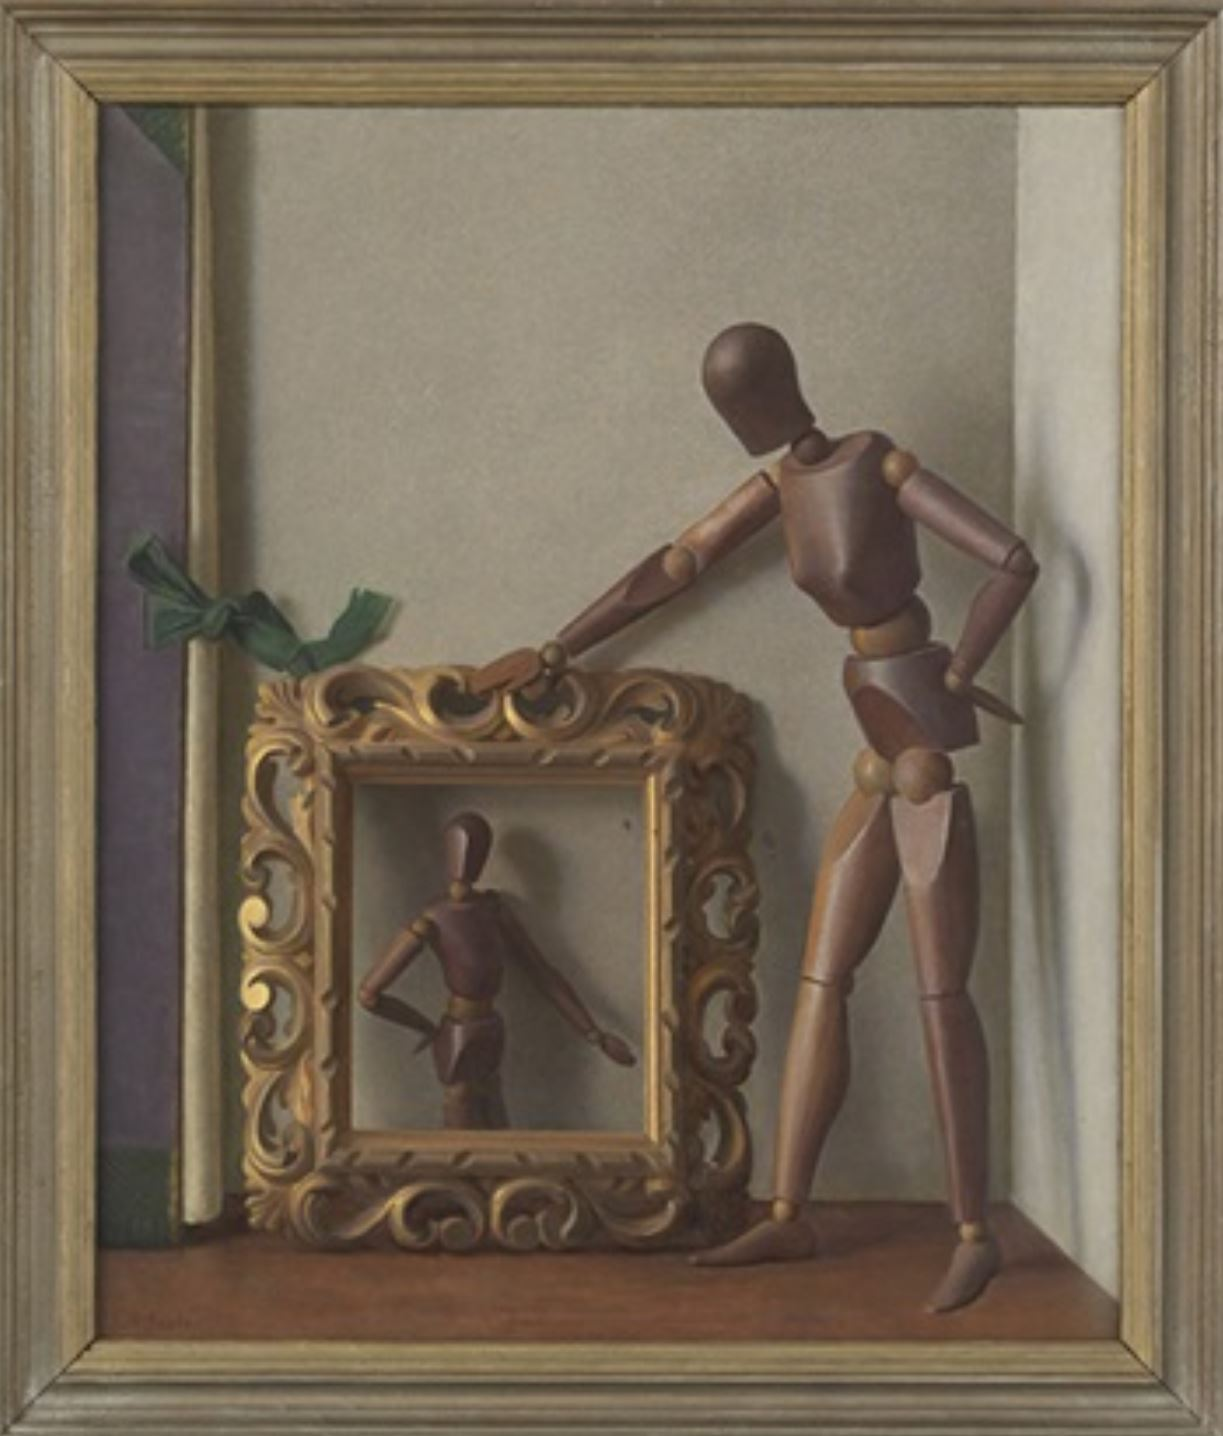 john-bulloch-souter (1890 - 1972), wood-lay-figure-with-a-mirror